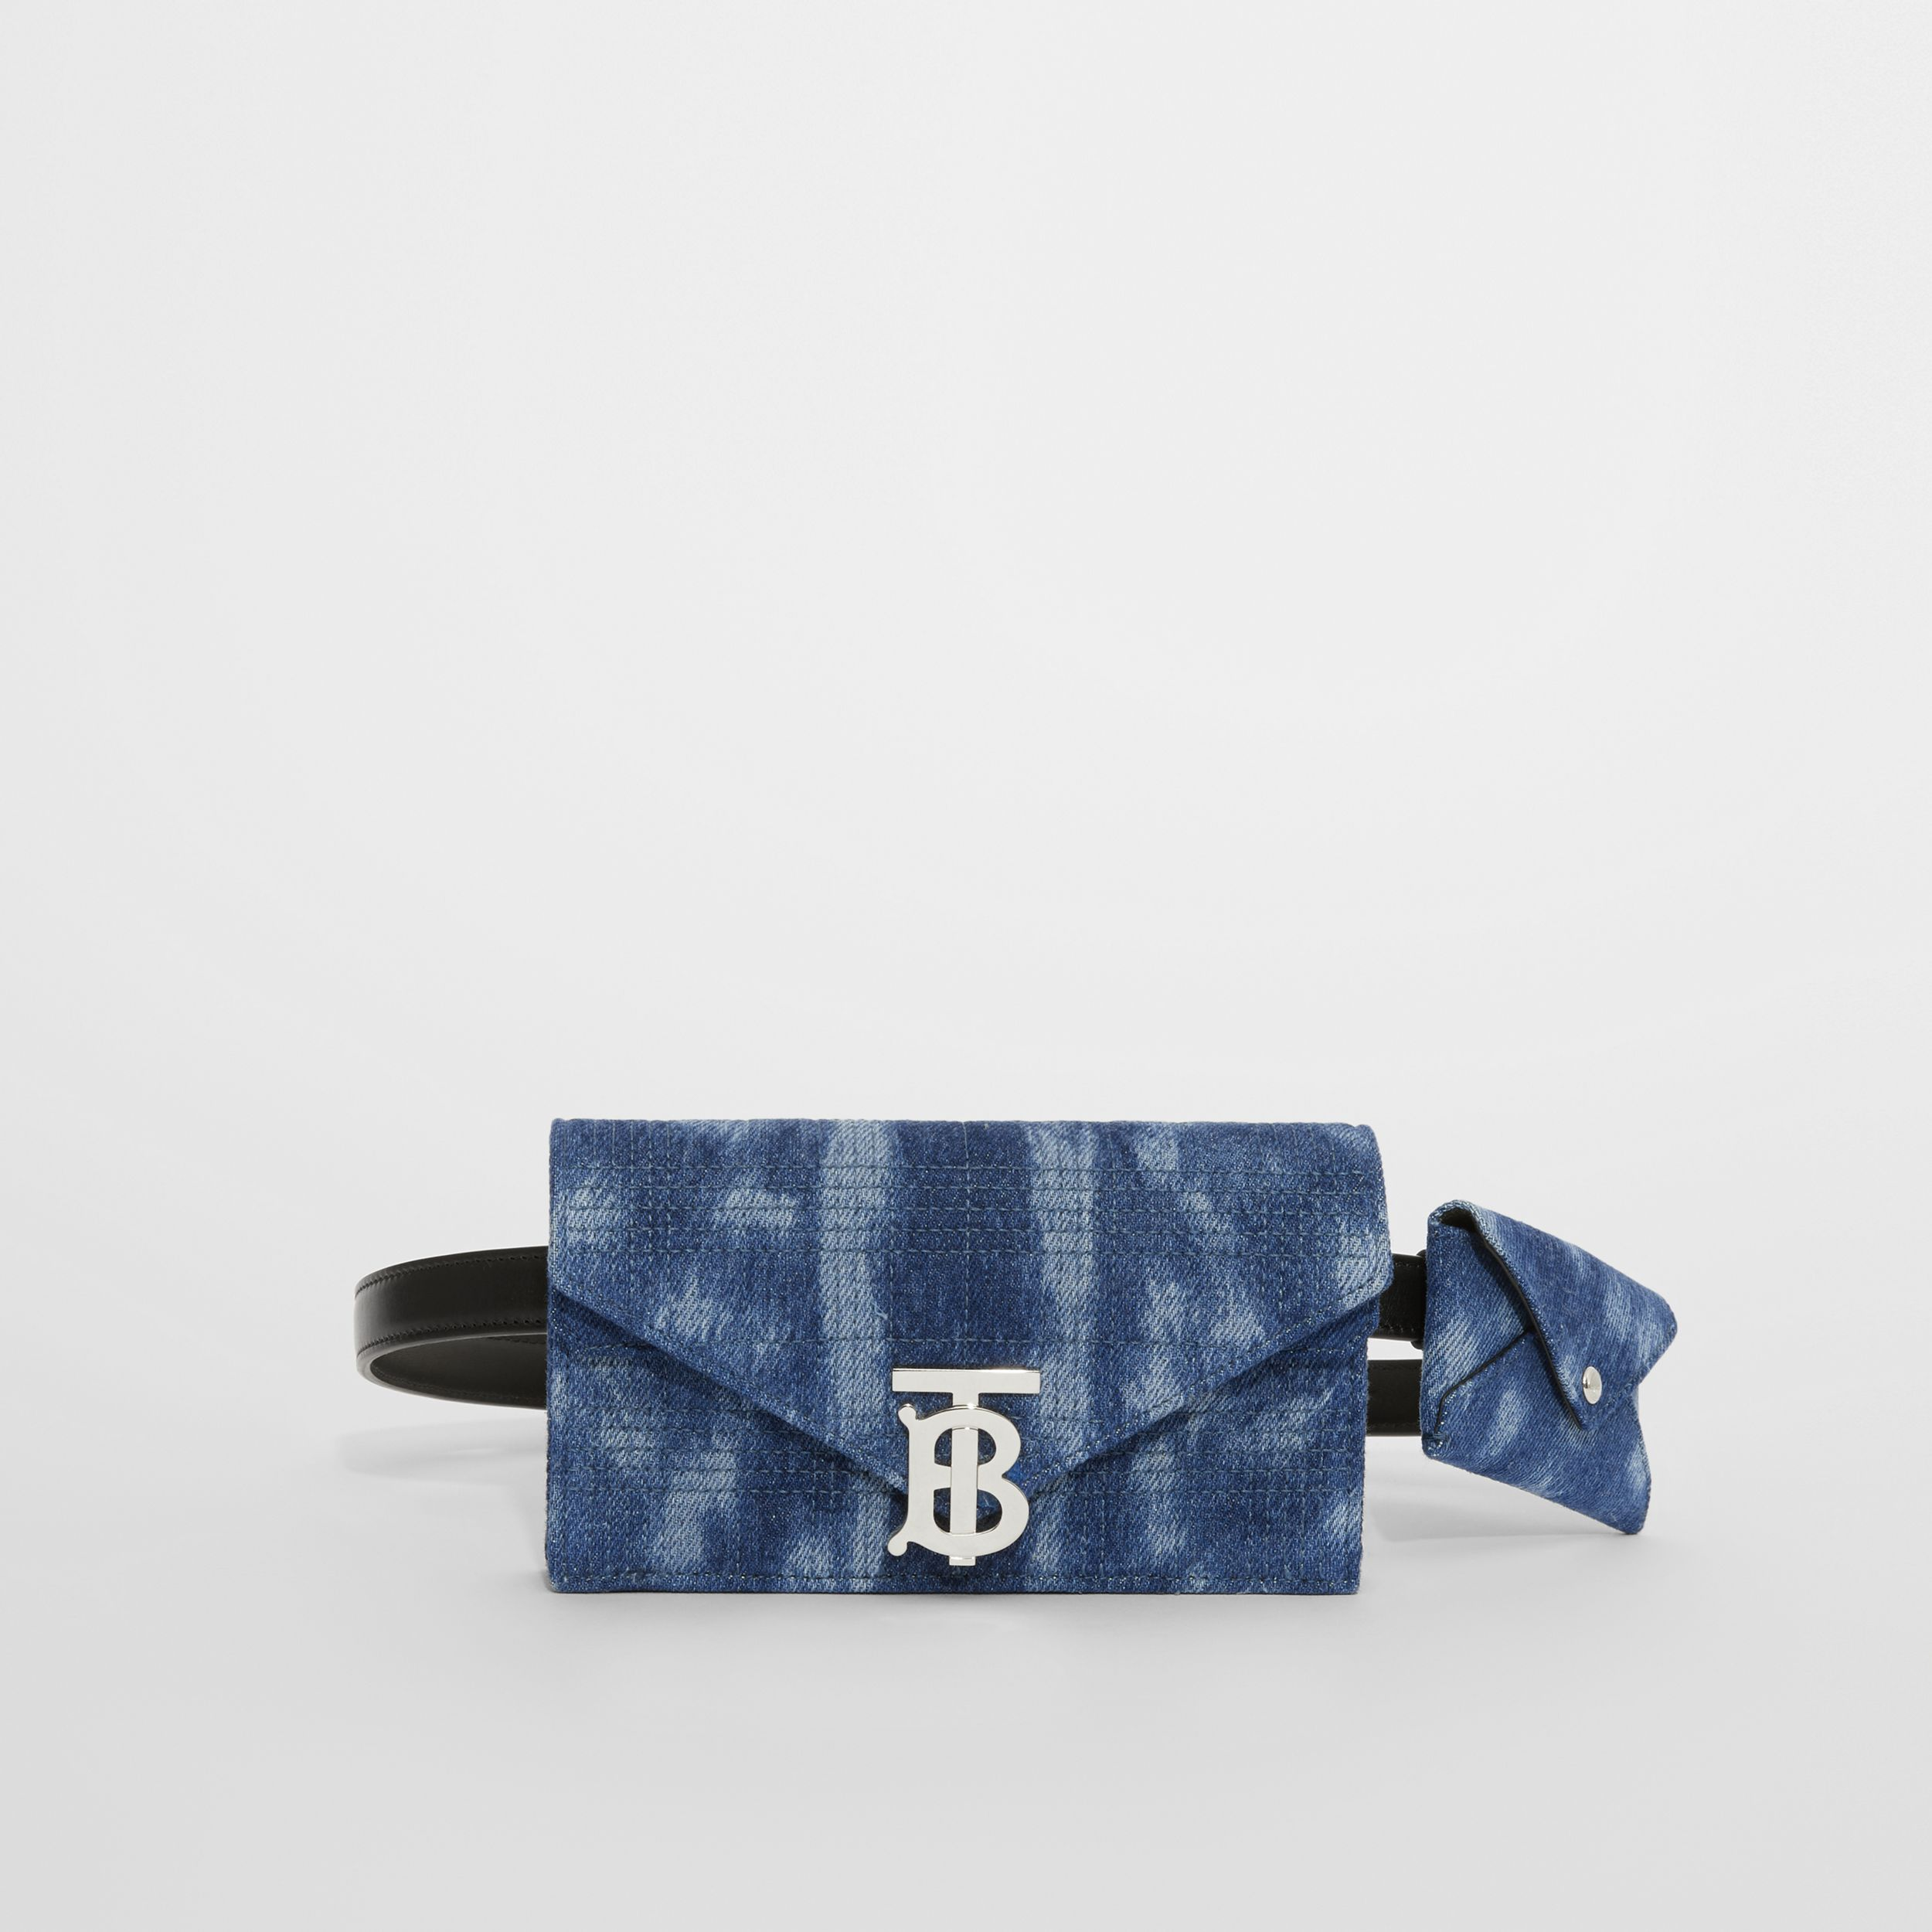 Belted Quilted Denim TB Envelope Clutch in Blue - Women | Burberry - 1